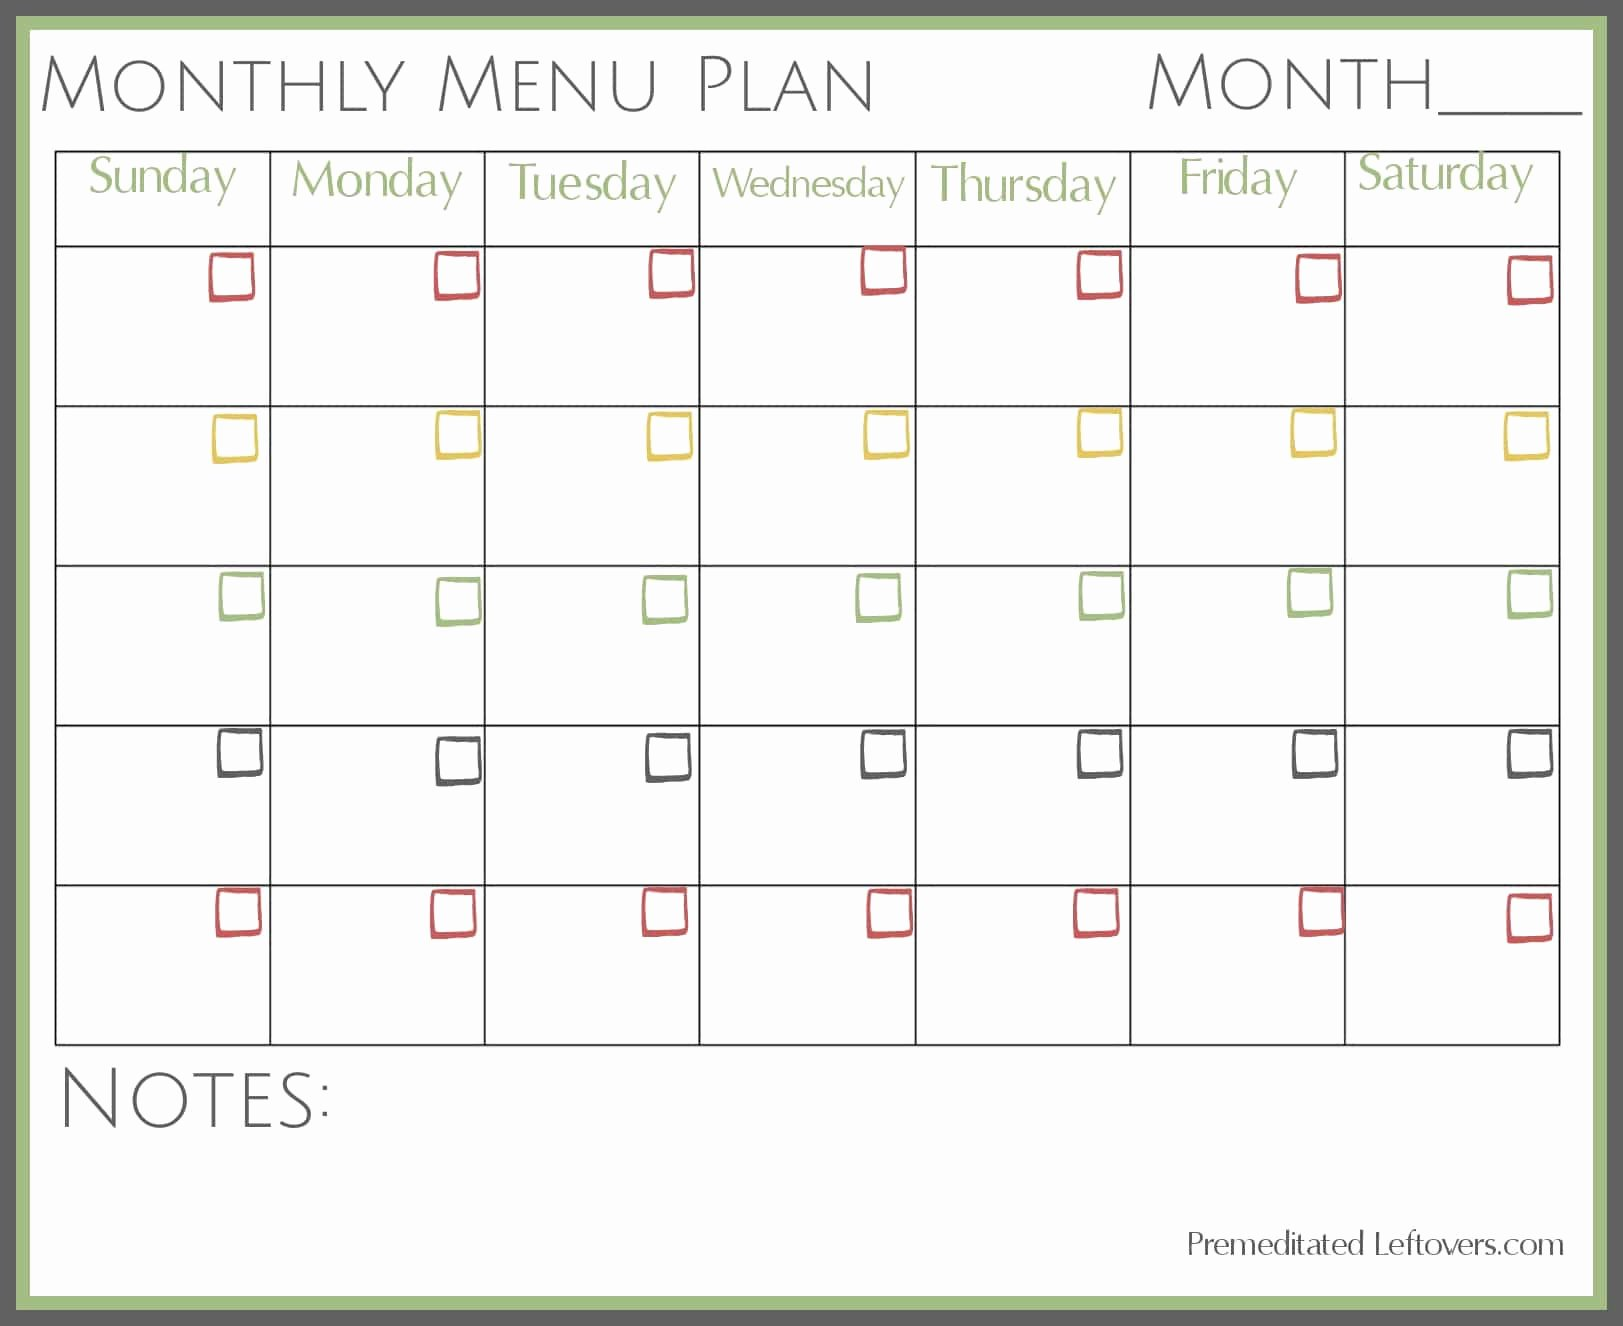 Monthly Meal Planner Template Best Of Free Printables From Premeditated Leftovers